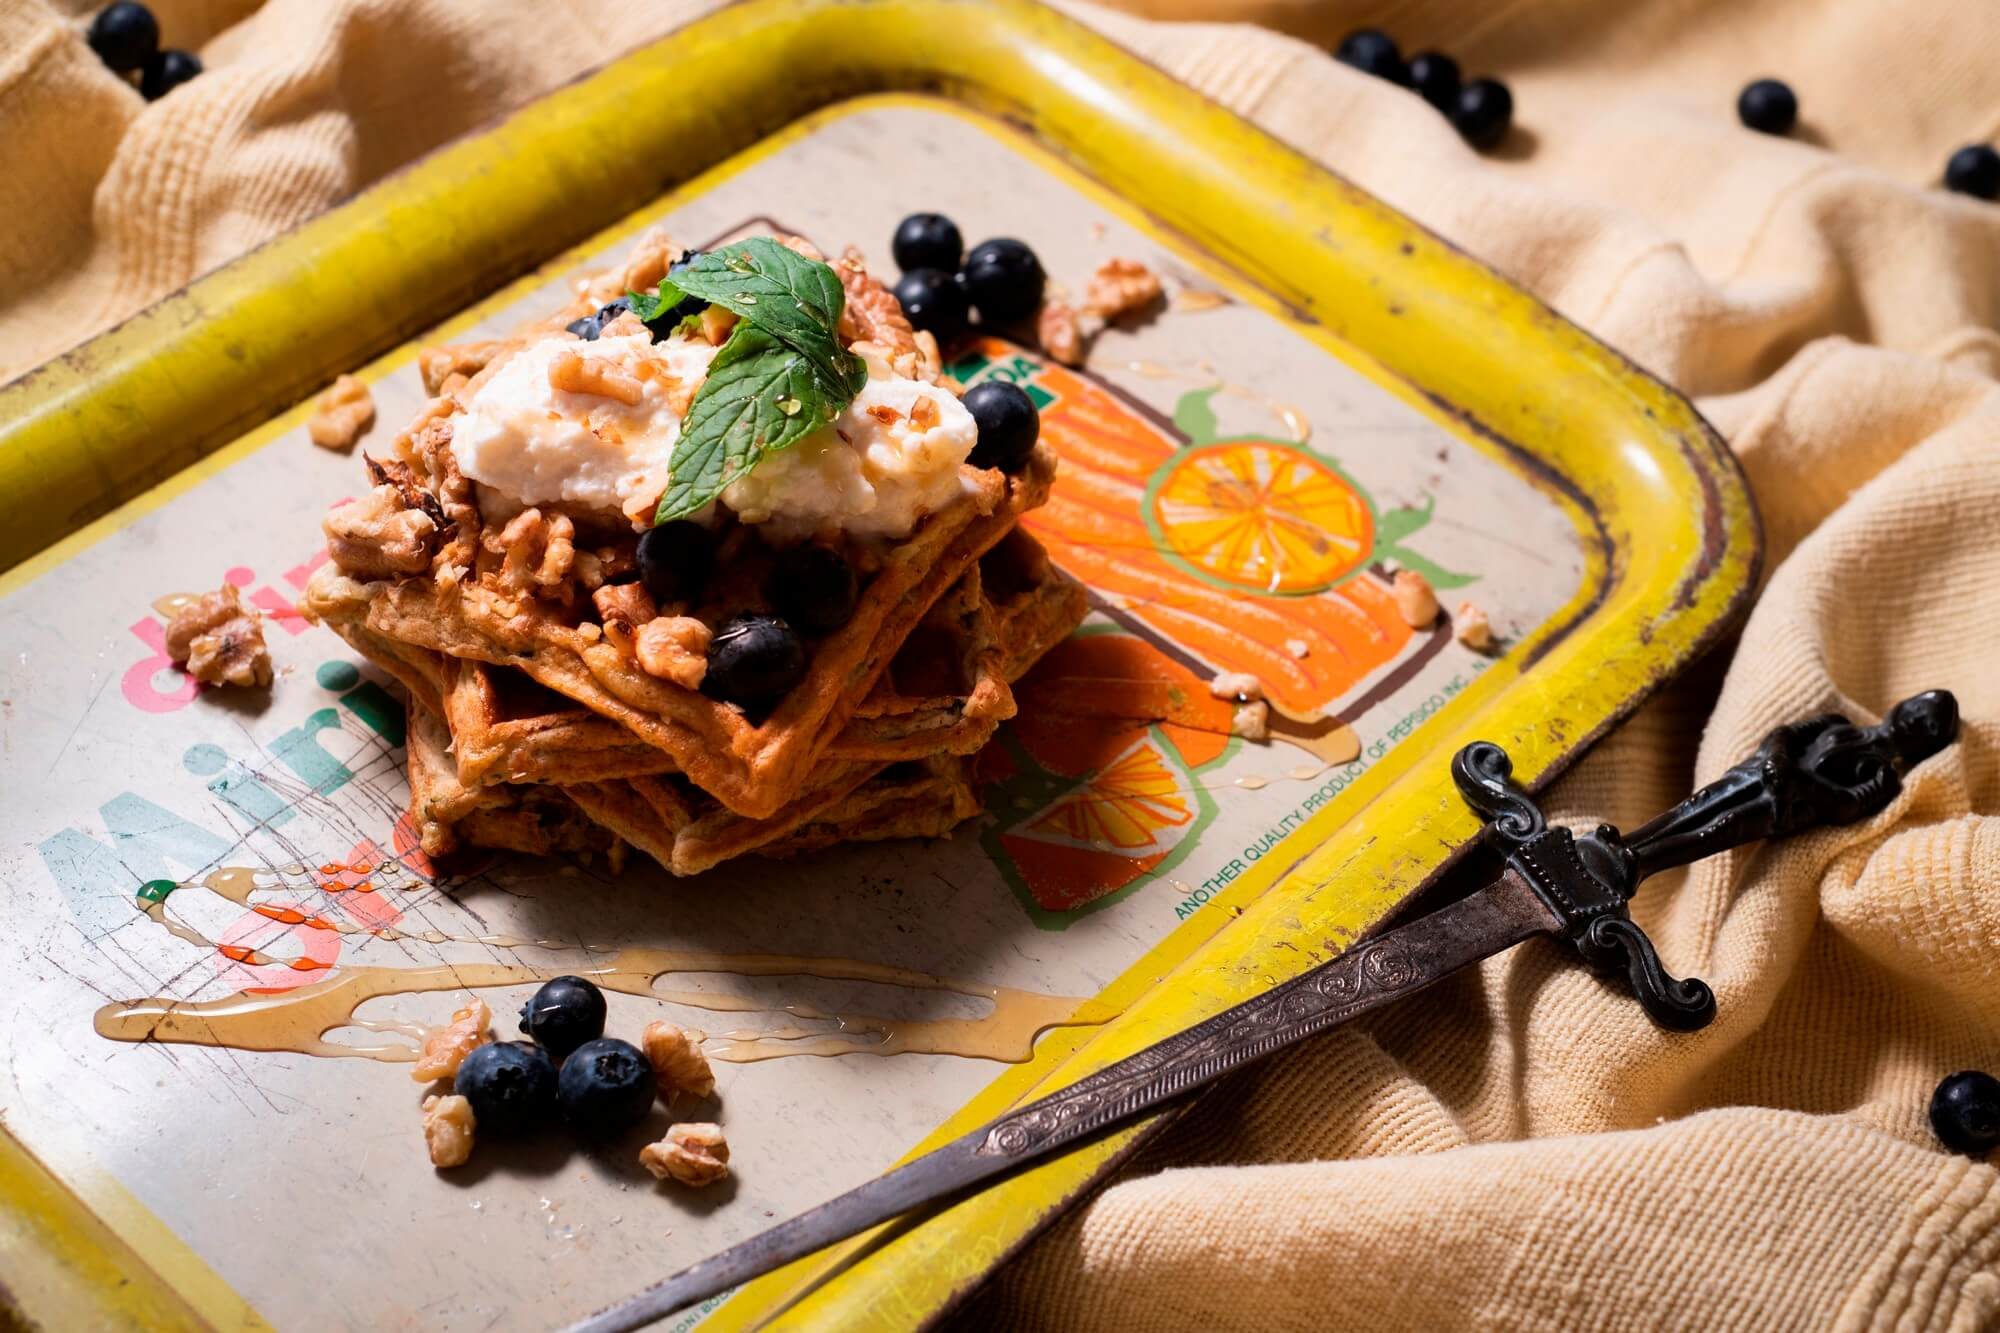 Zucchini waffles with whipped ricotta, berries and honey